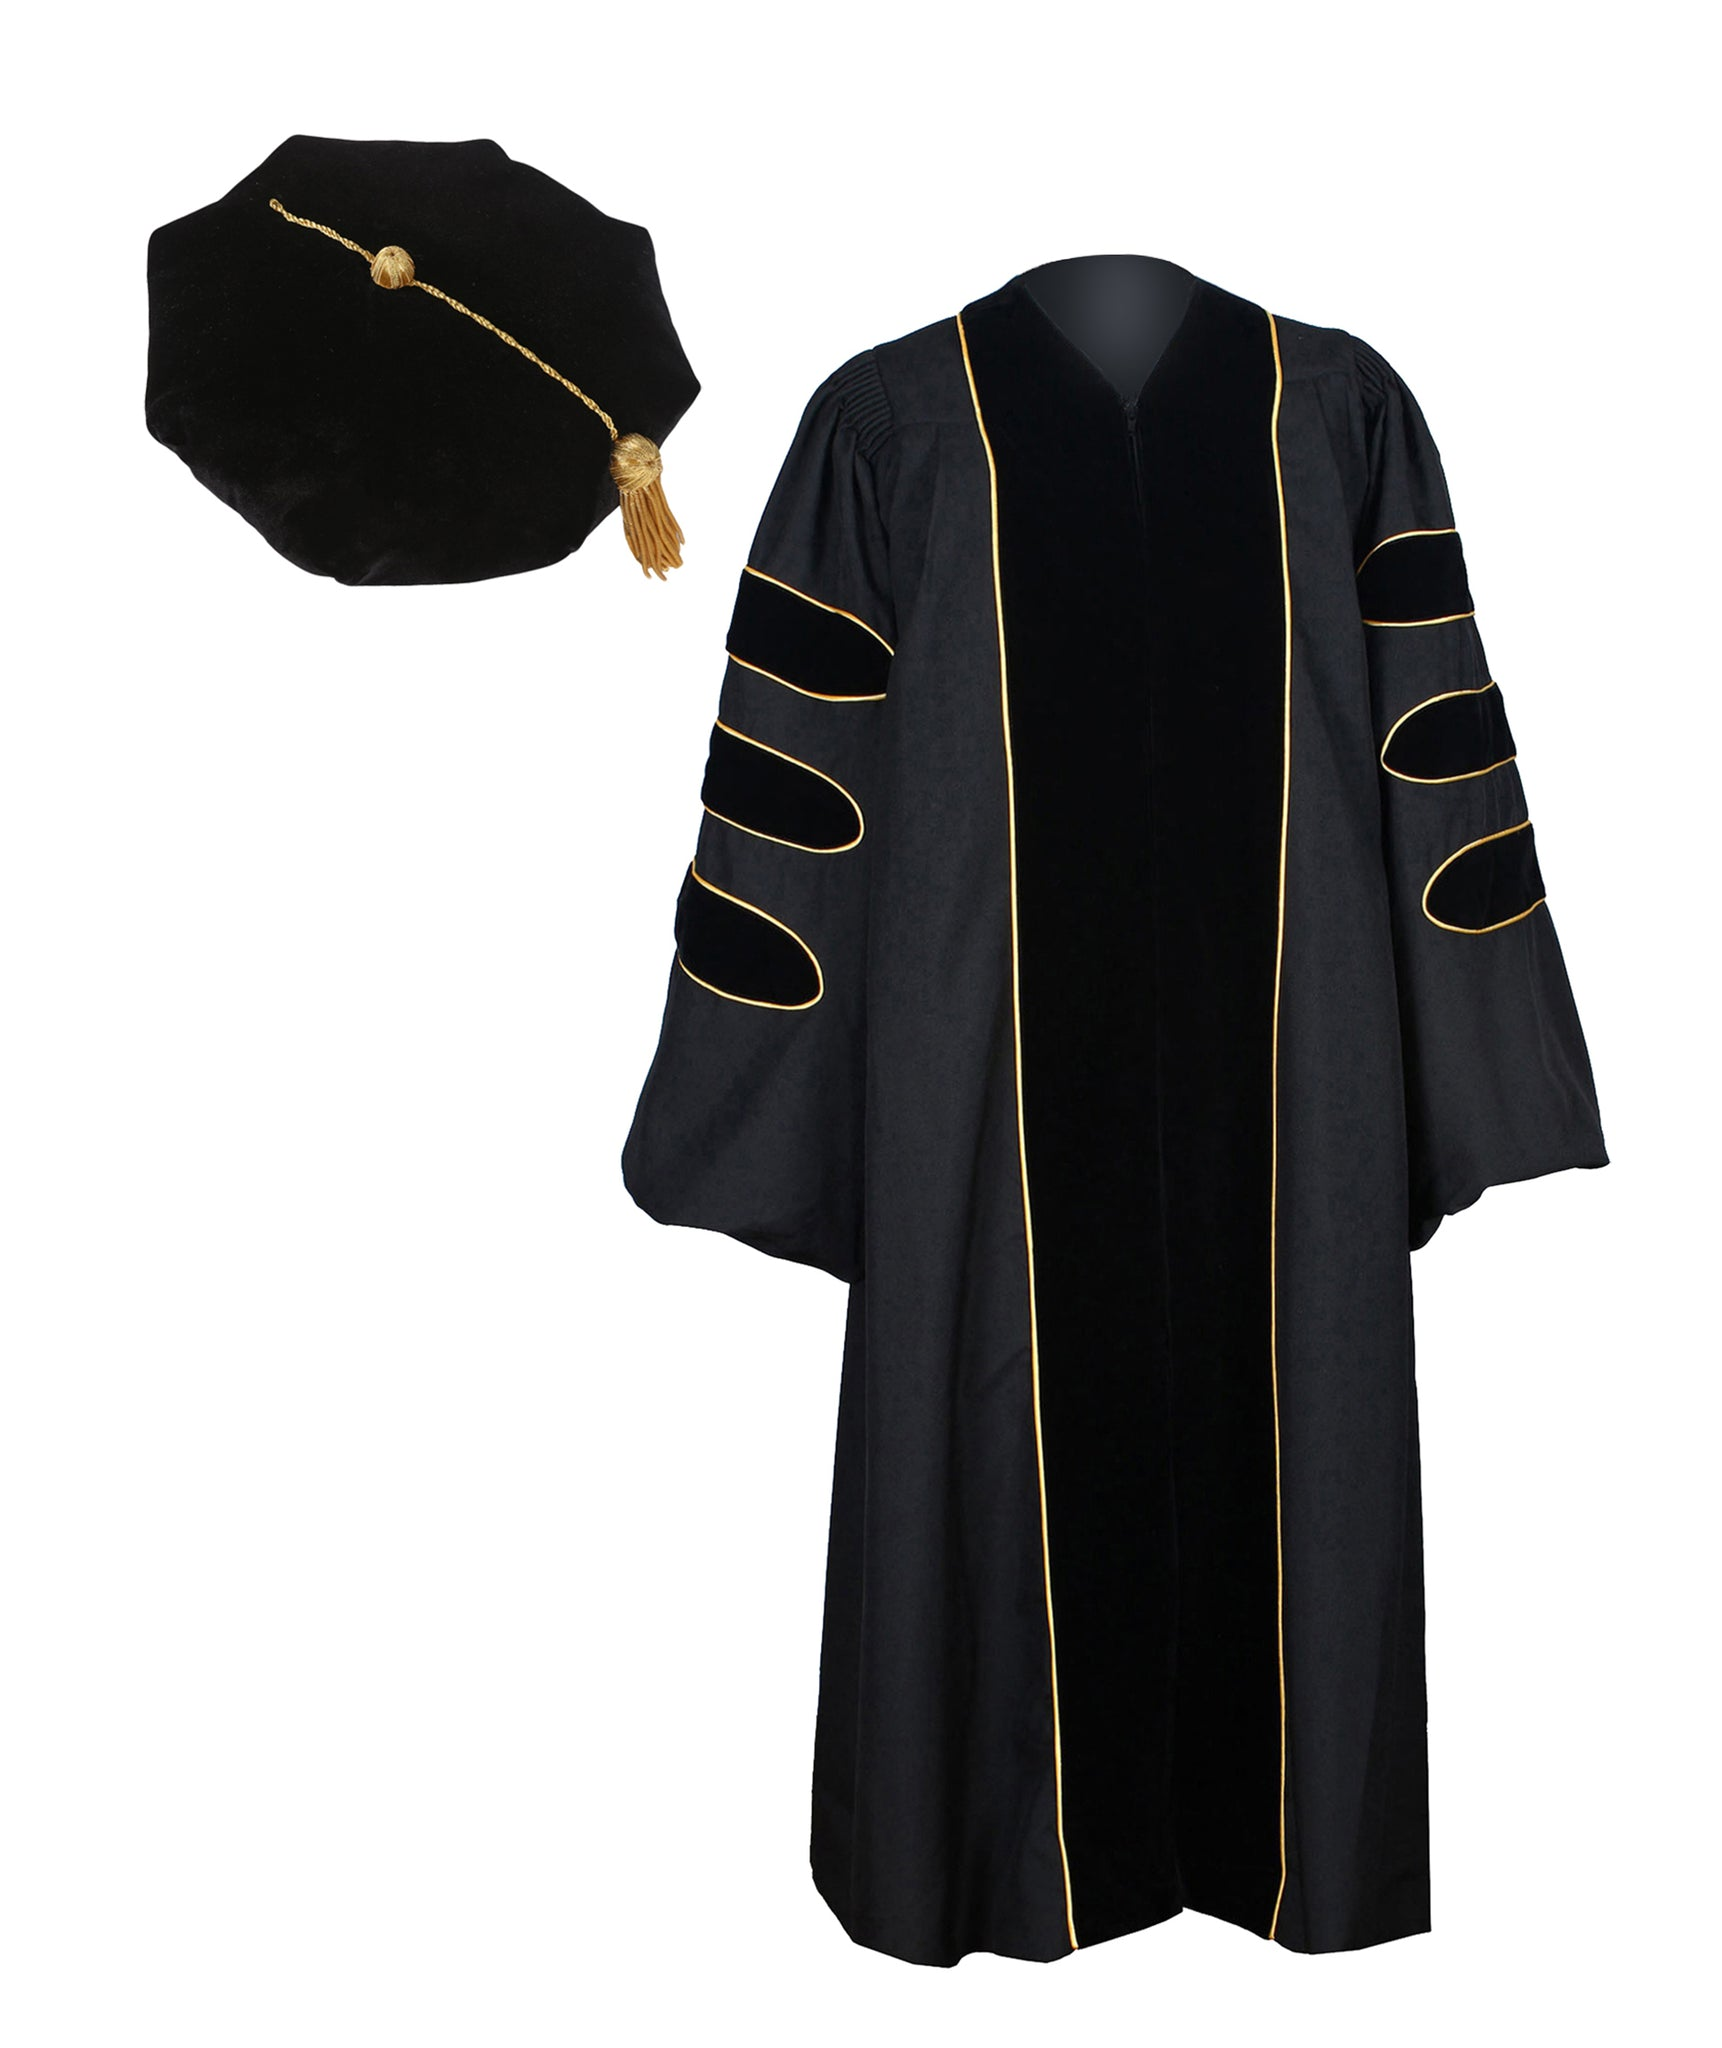 Deluxe Graduation Doctoral Gown,Hood and 8-Side Tam Package Customization